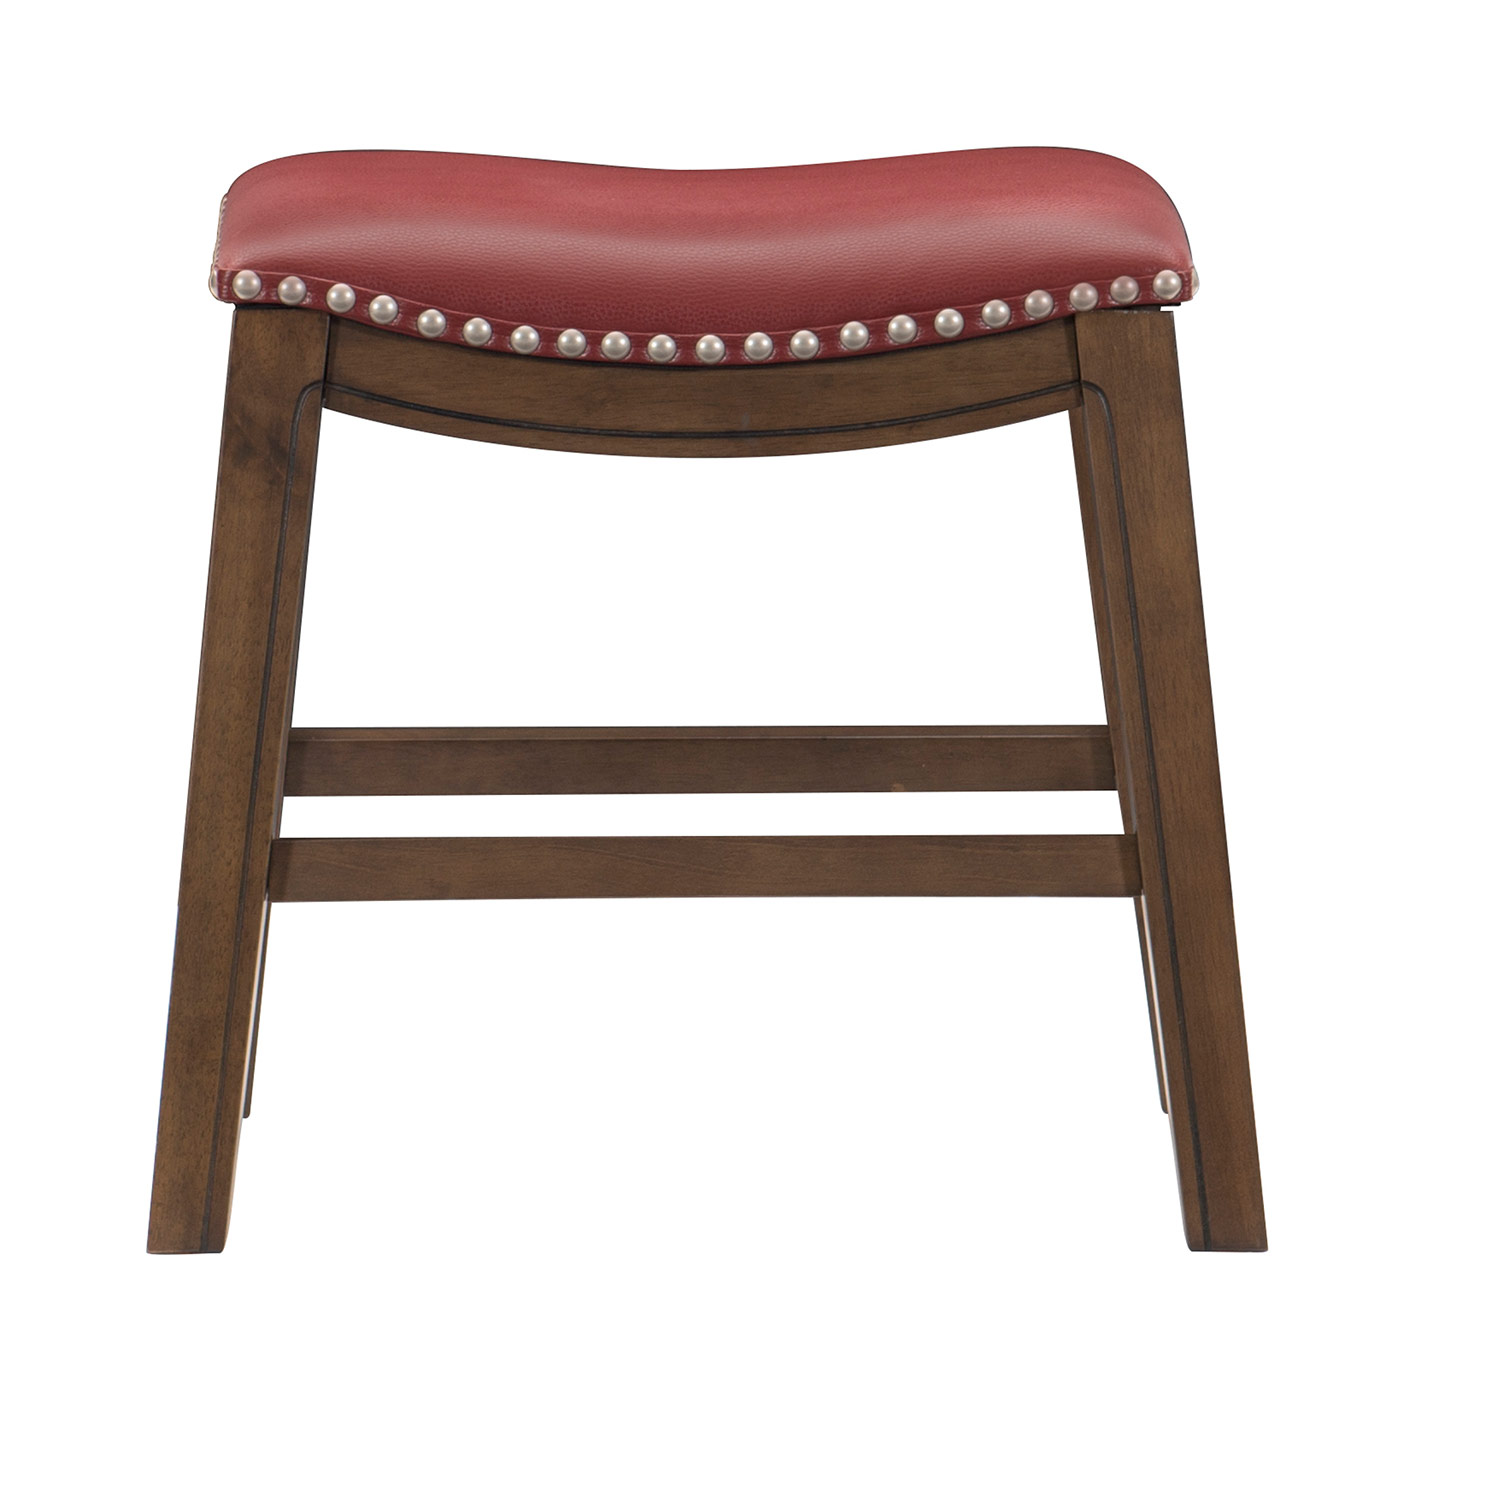 Homelegance 18 SH Stool - Red